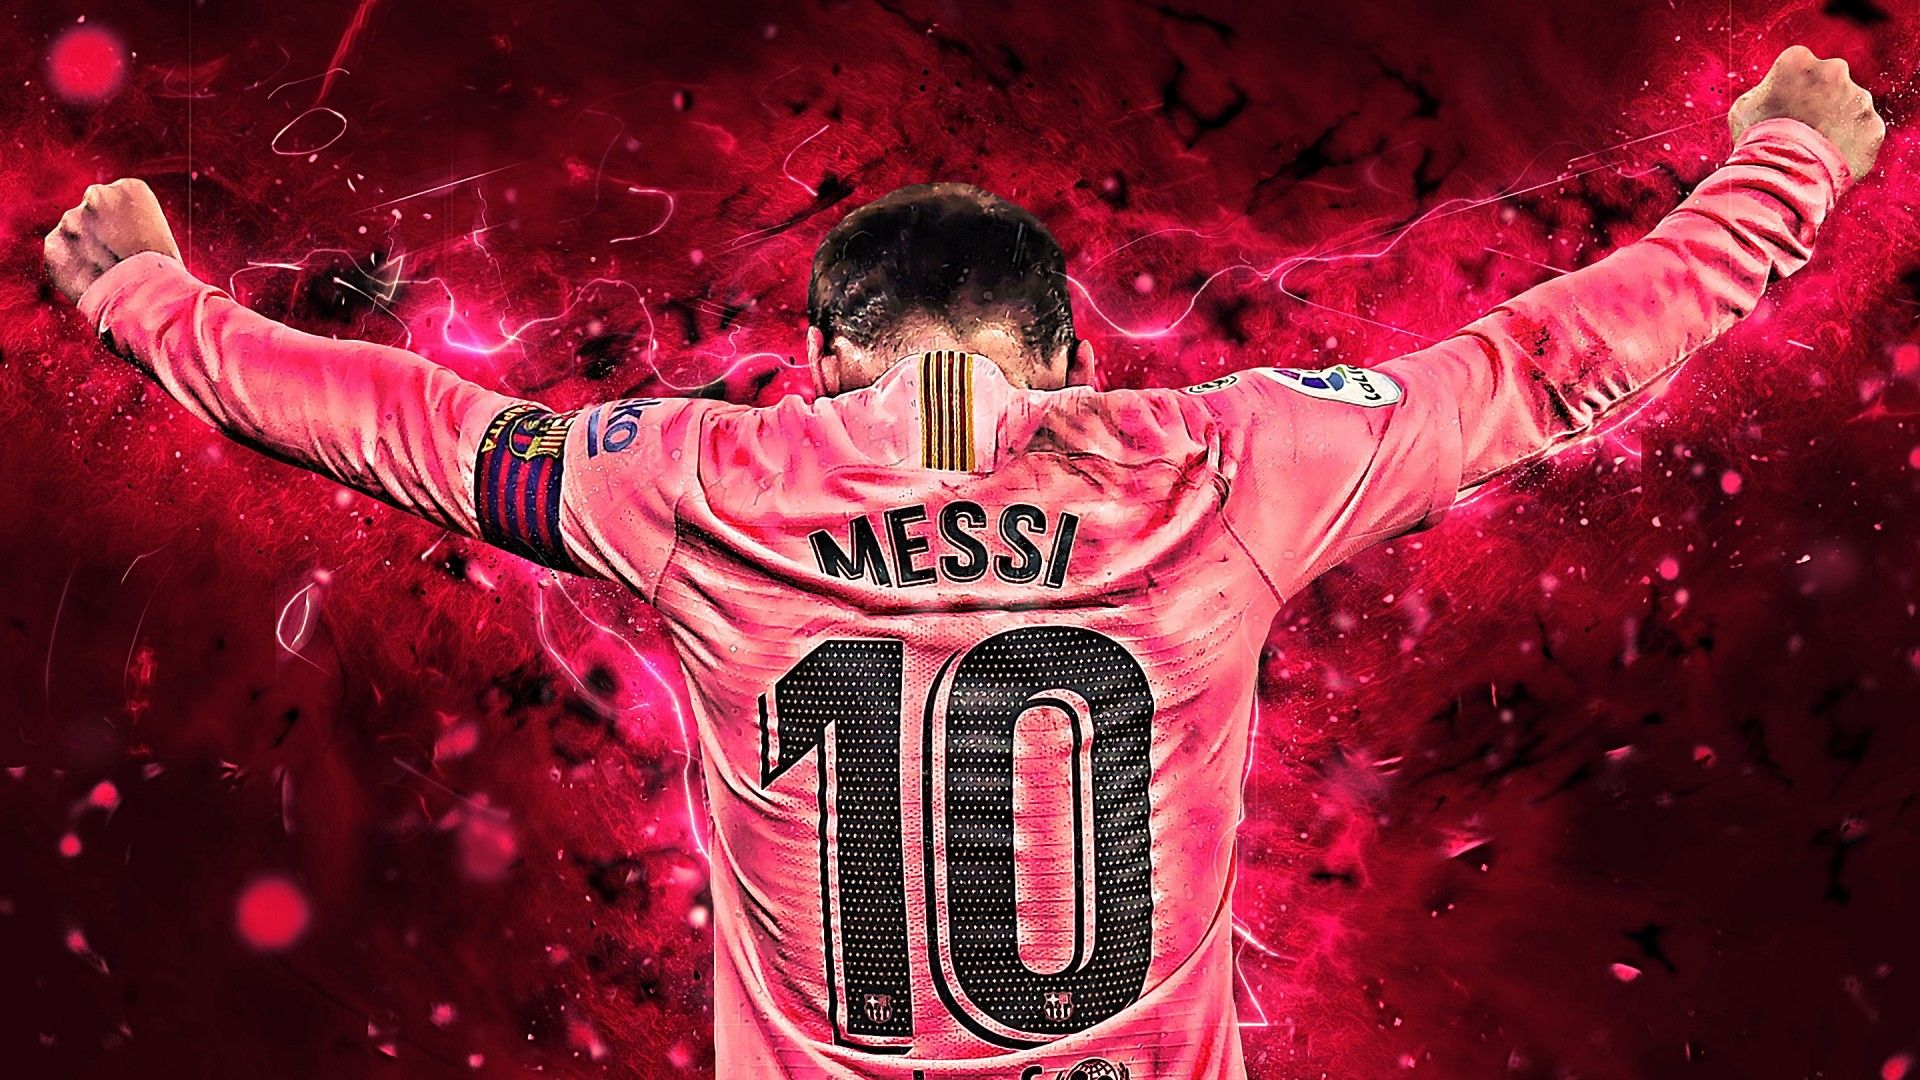 With Messi Wallpaper 2019 Hd